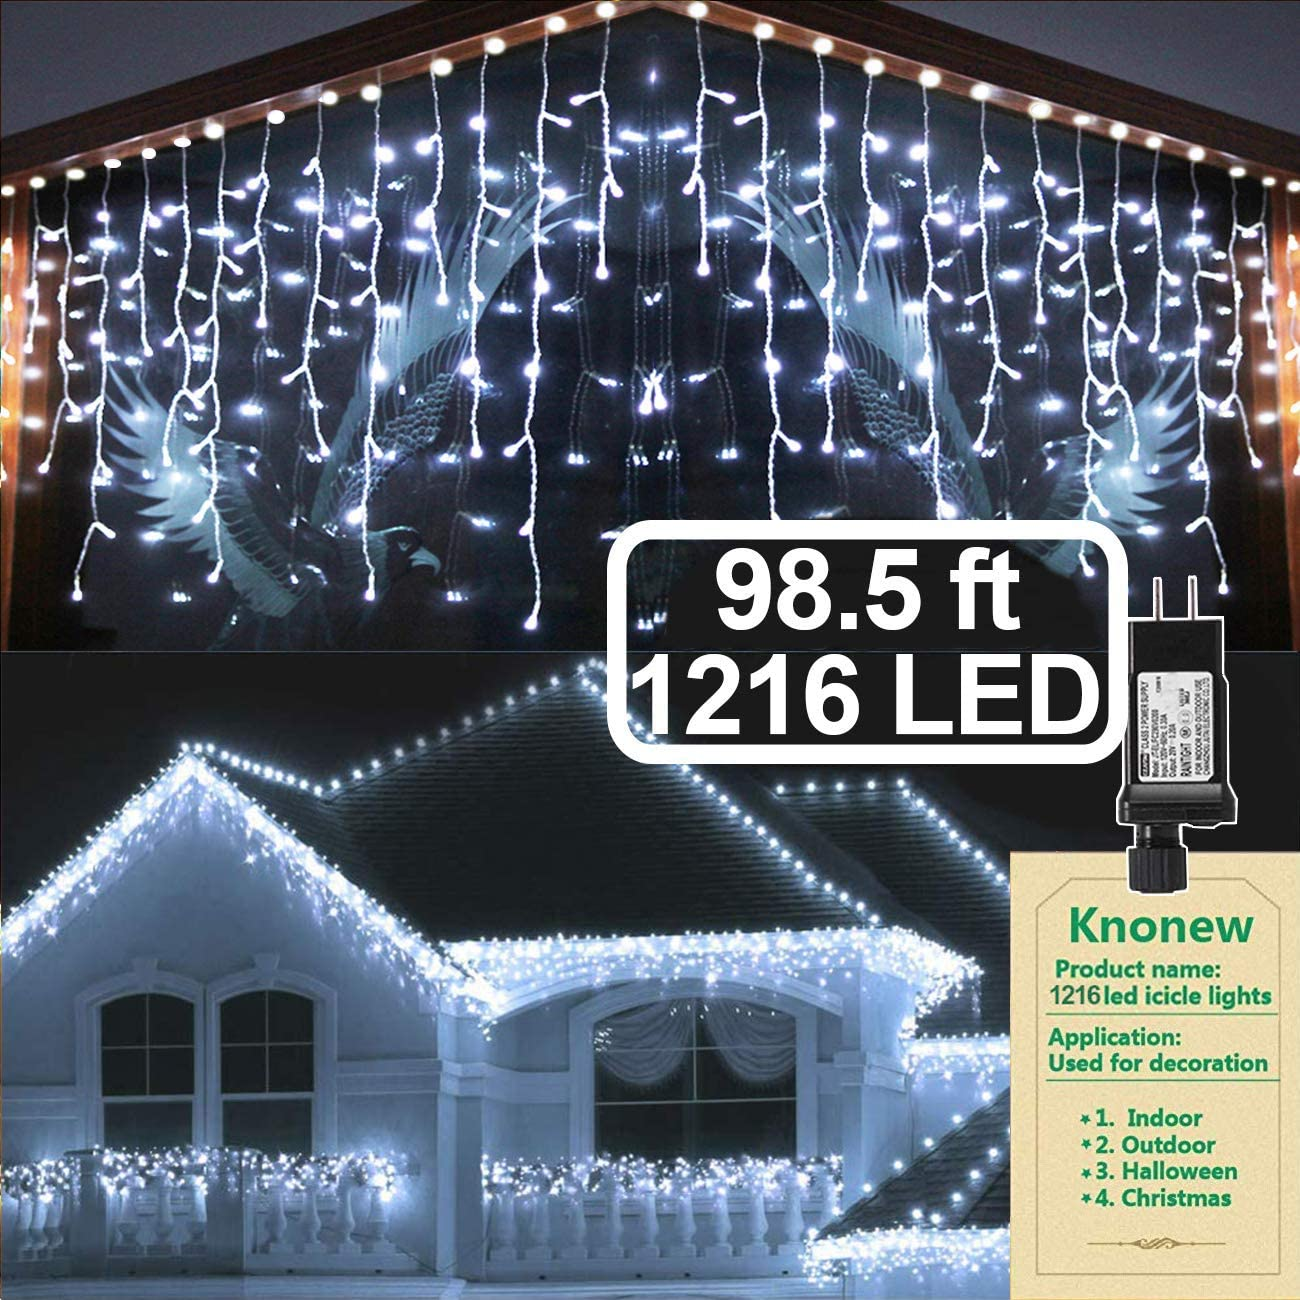 KNONEW LED Icicle Lights, 98ft 1216 LED, 8 Modes, Curtain Fairy Light Clear Wire LED String Decor for Christmas/Thanksgiving/Easter/Halloween/Party Backdrops Decorations (Cool White)